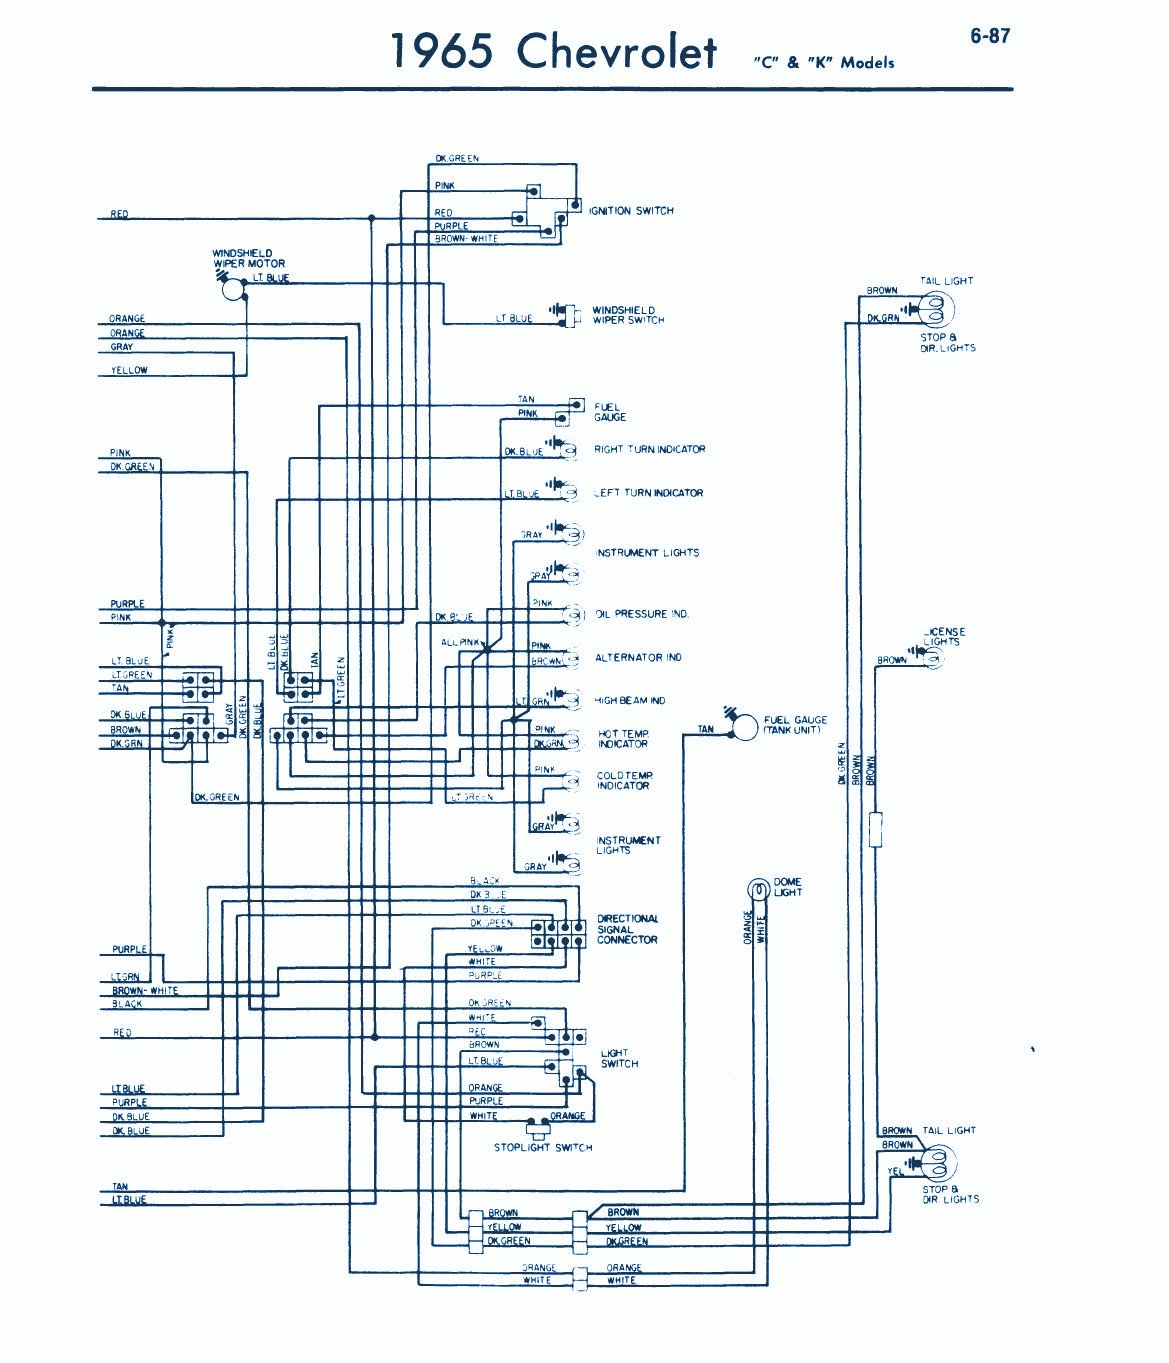 1965 chevrolet wiring diagram